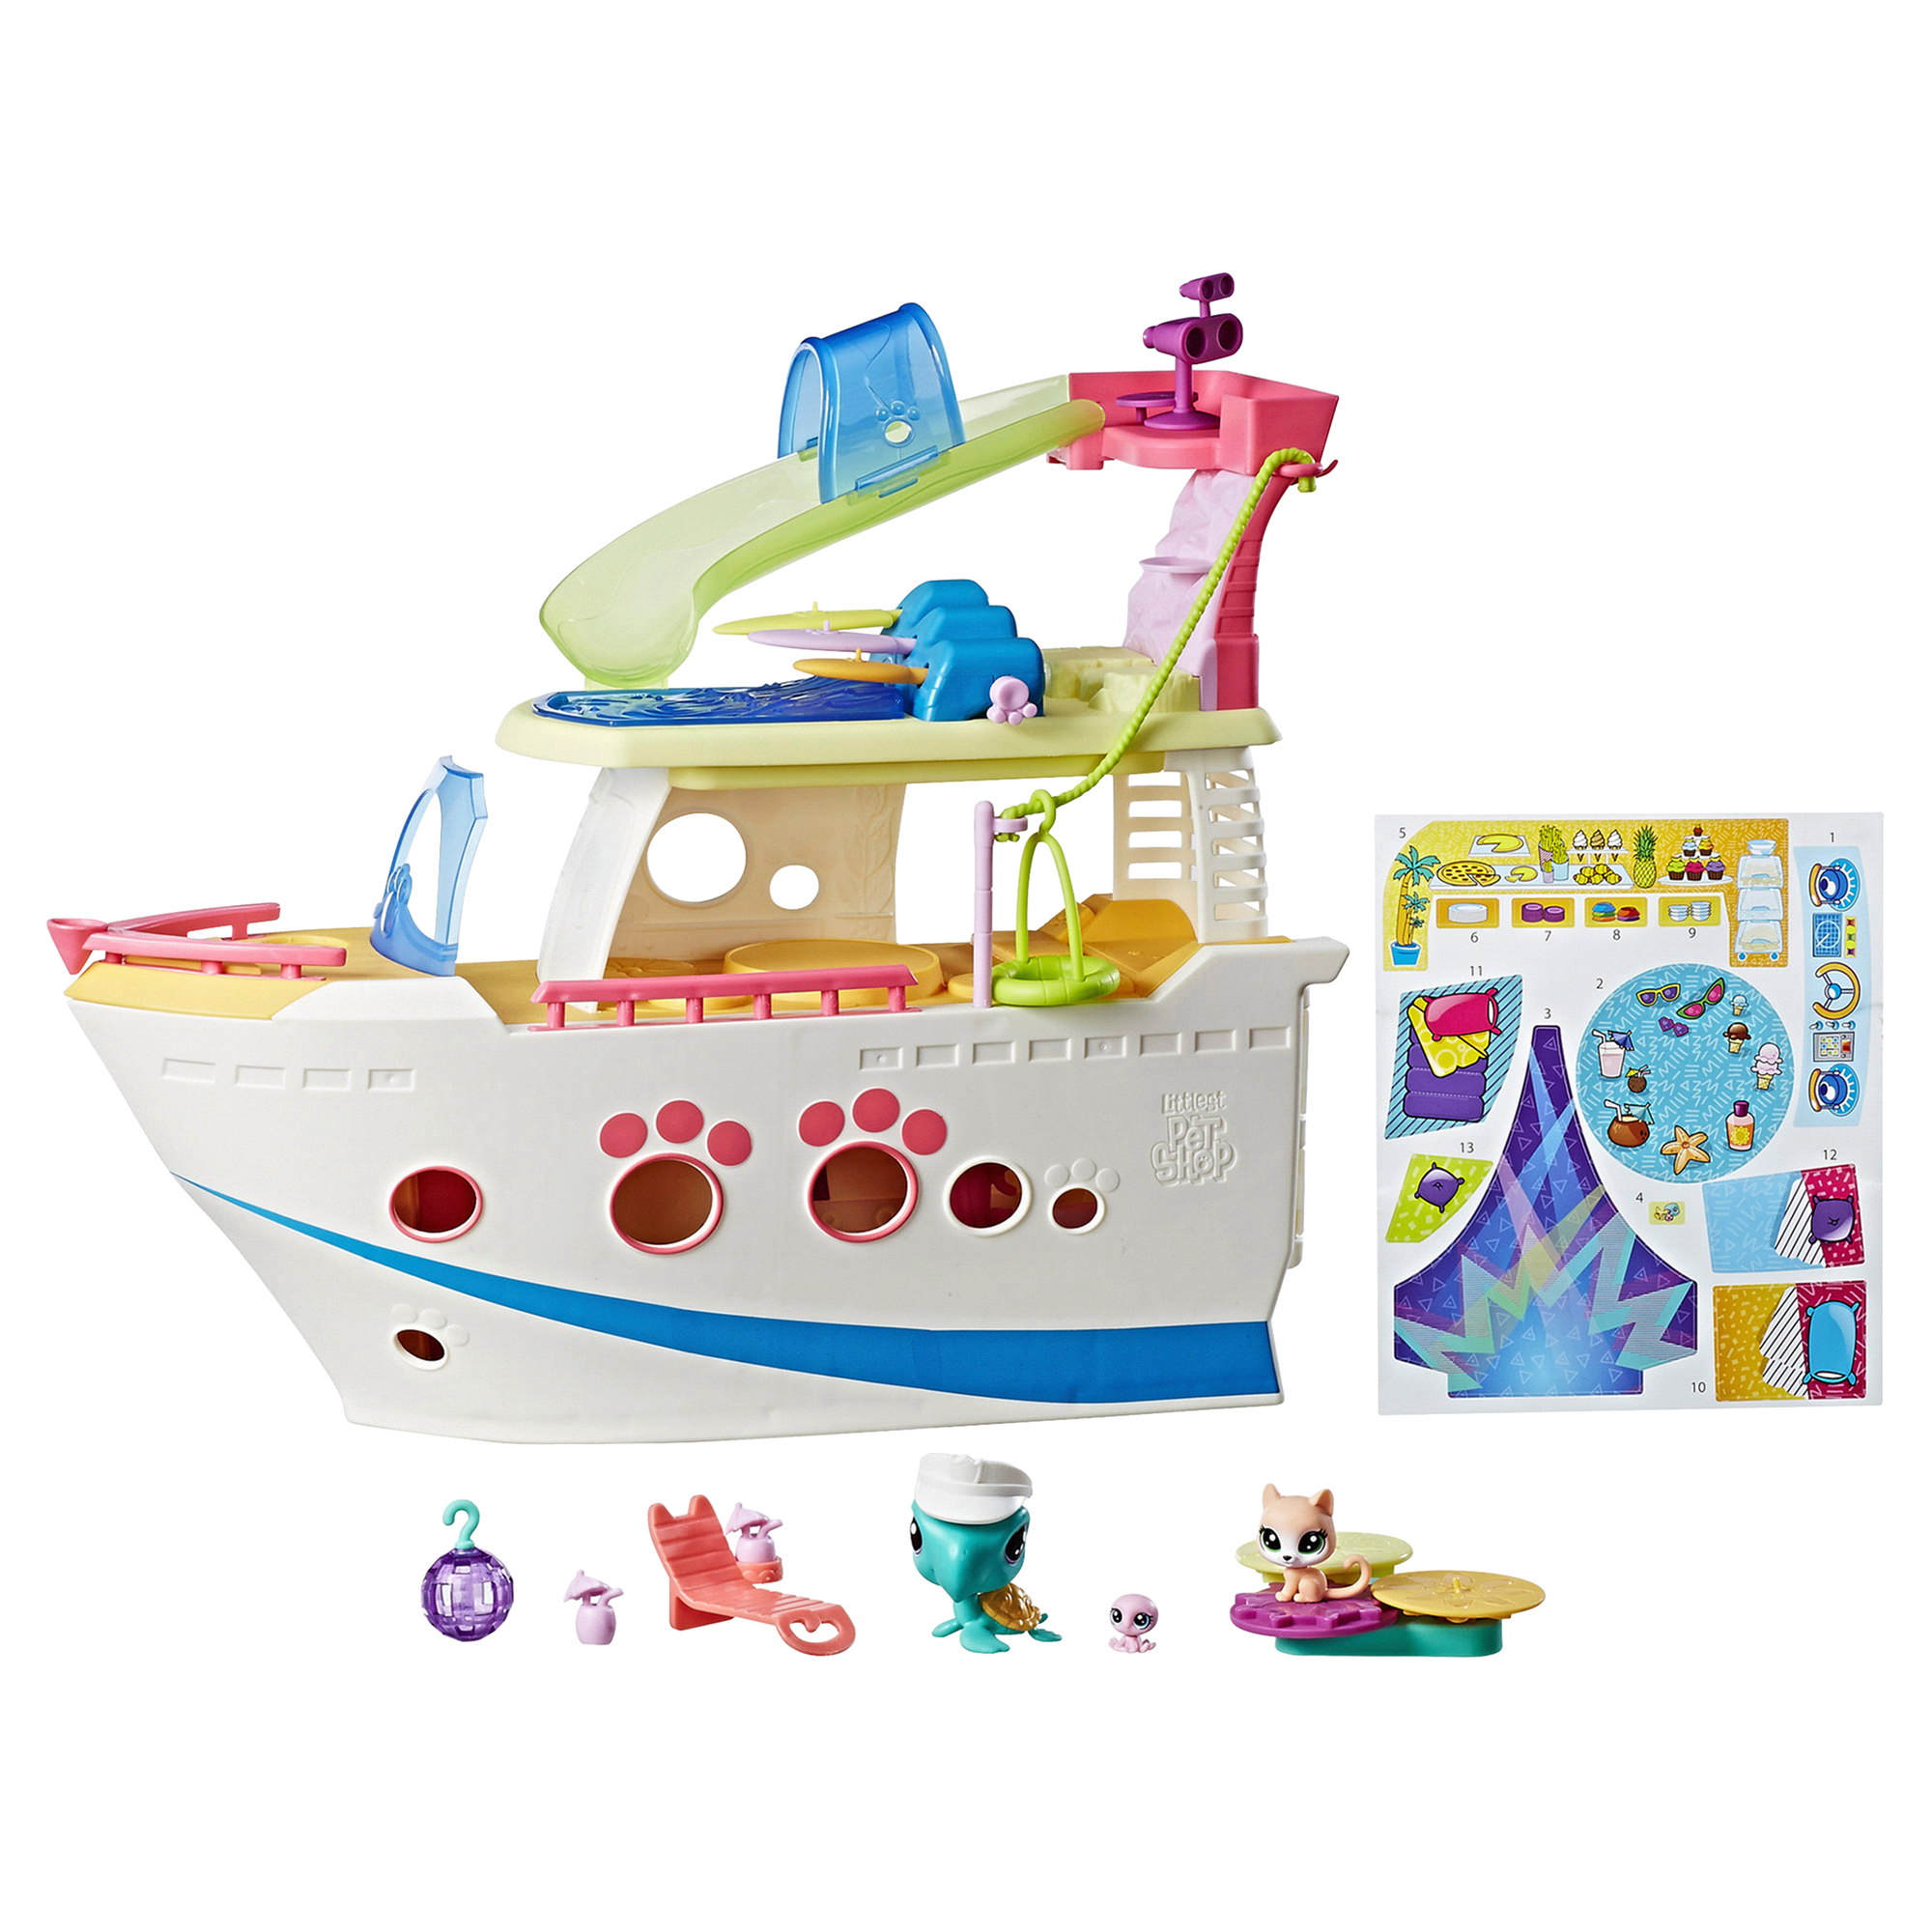 Littlest Pet Shop LPS Cruise Ship | Meijer.com